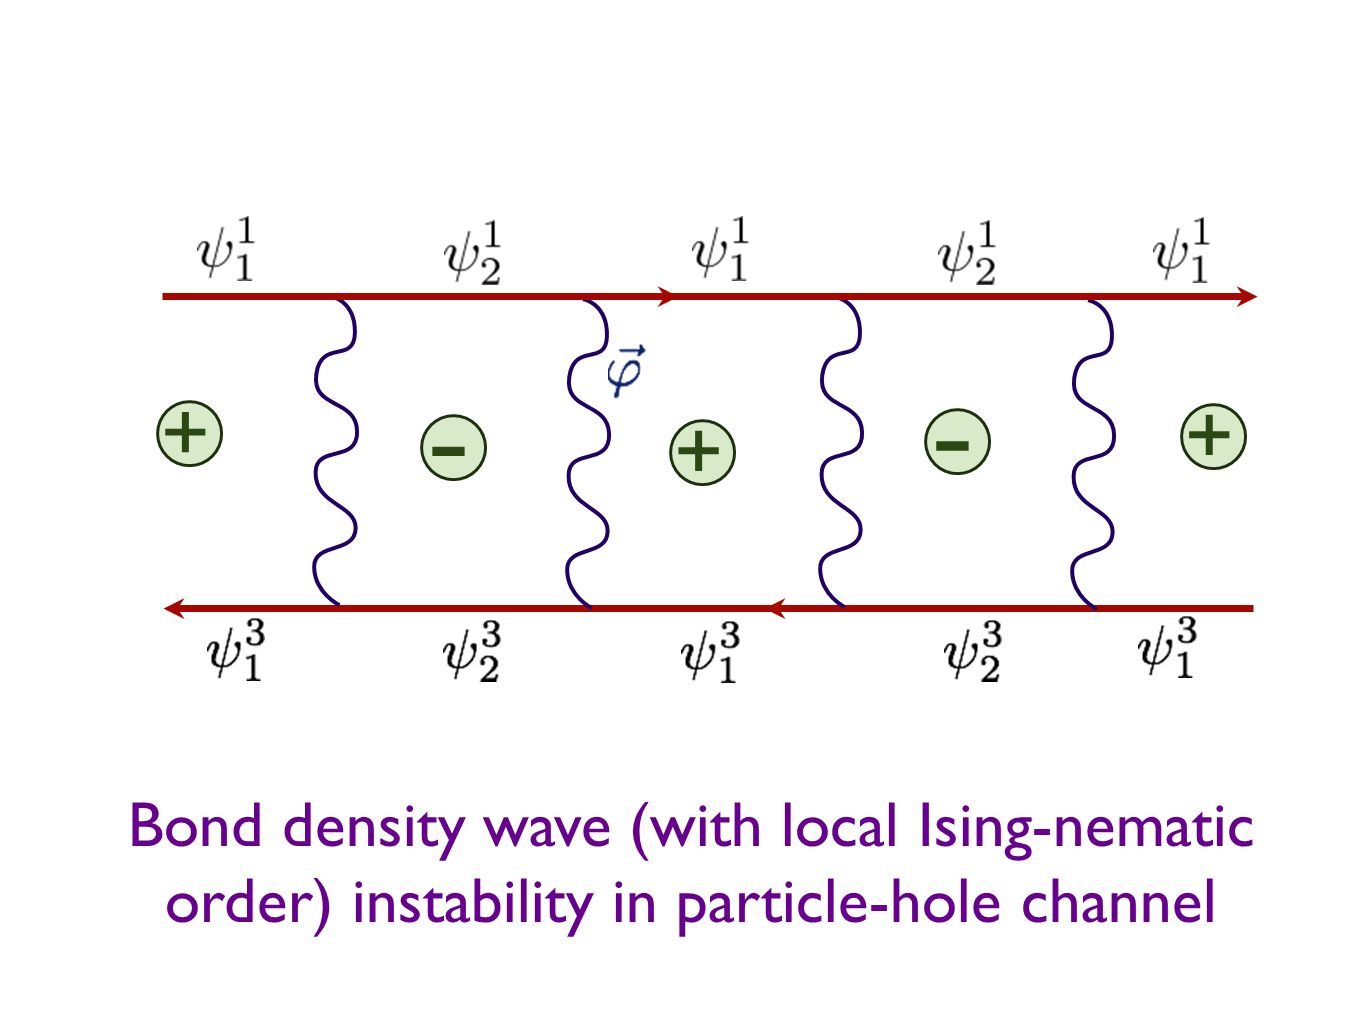 Bond density wave (with local Ising-nematic order) instability in particle-hole channel + + - + -